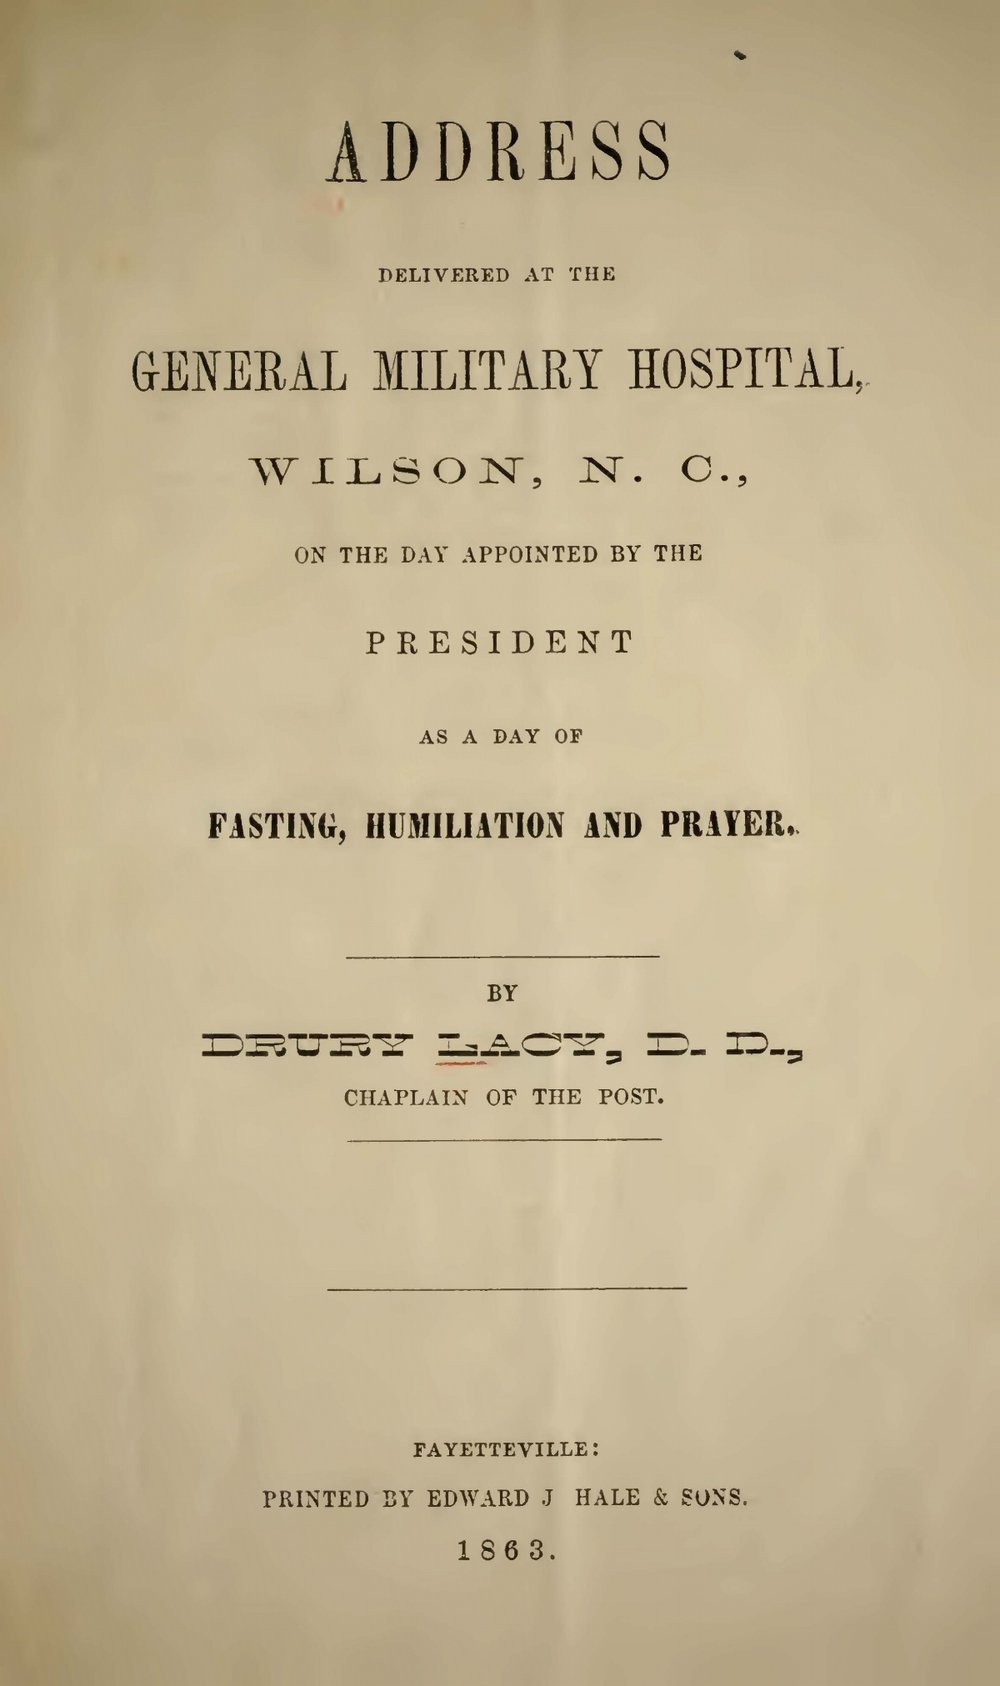 Lacy, Jr., Drury, Address Delivered at the General Military Hospital Title Page.jpg